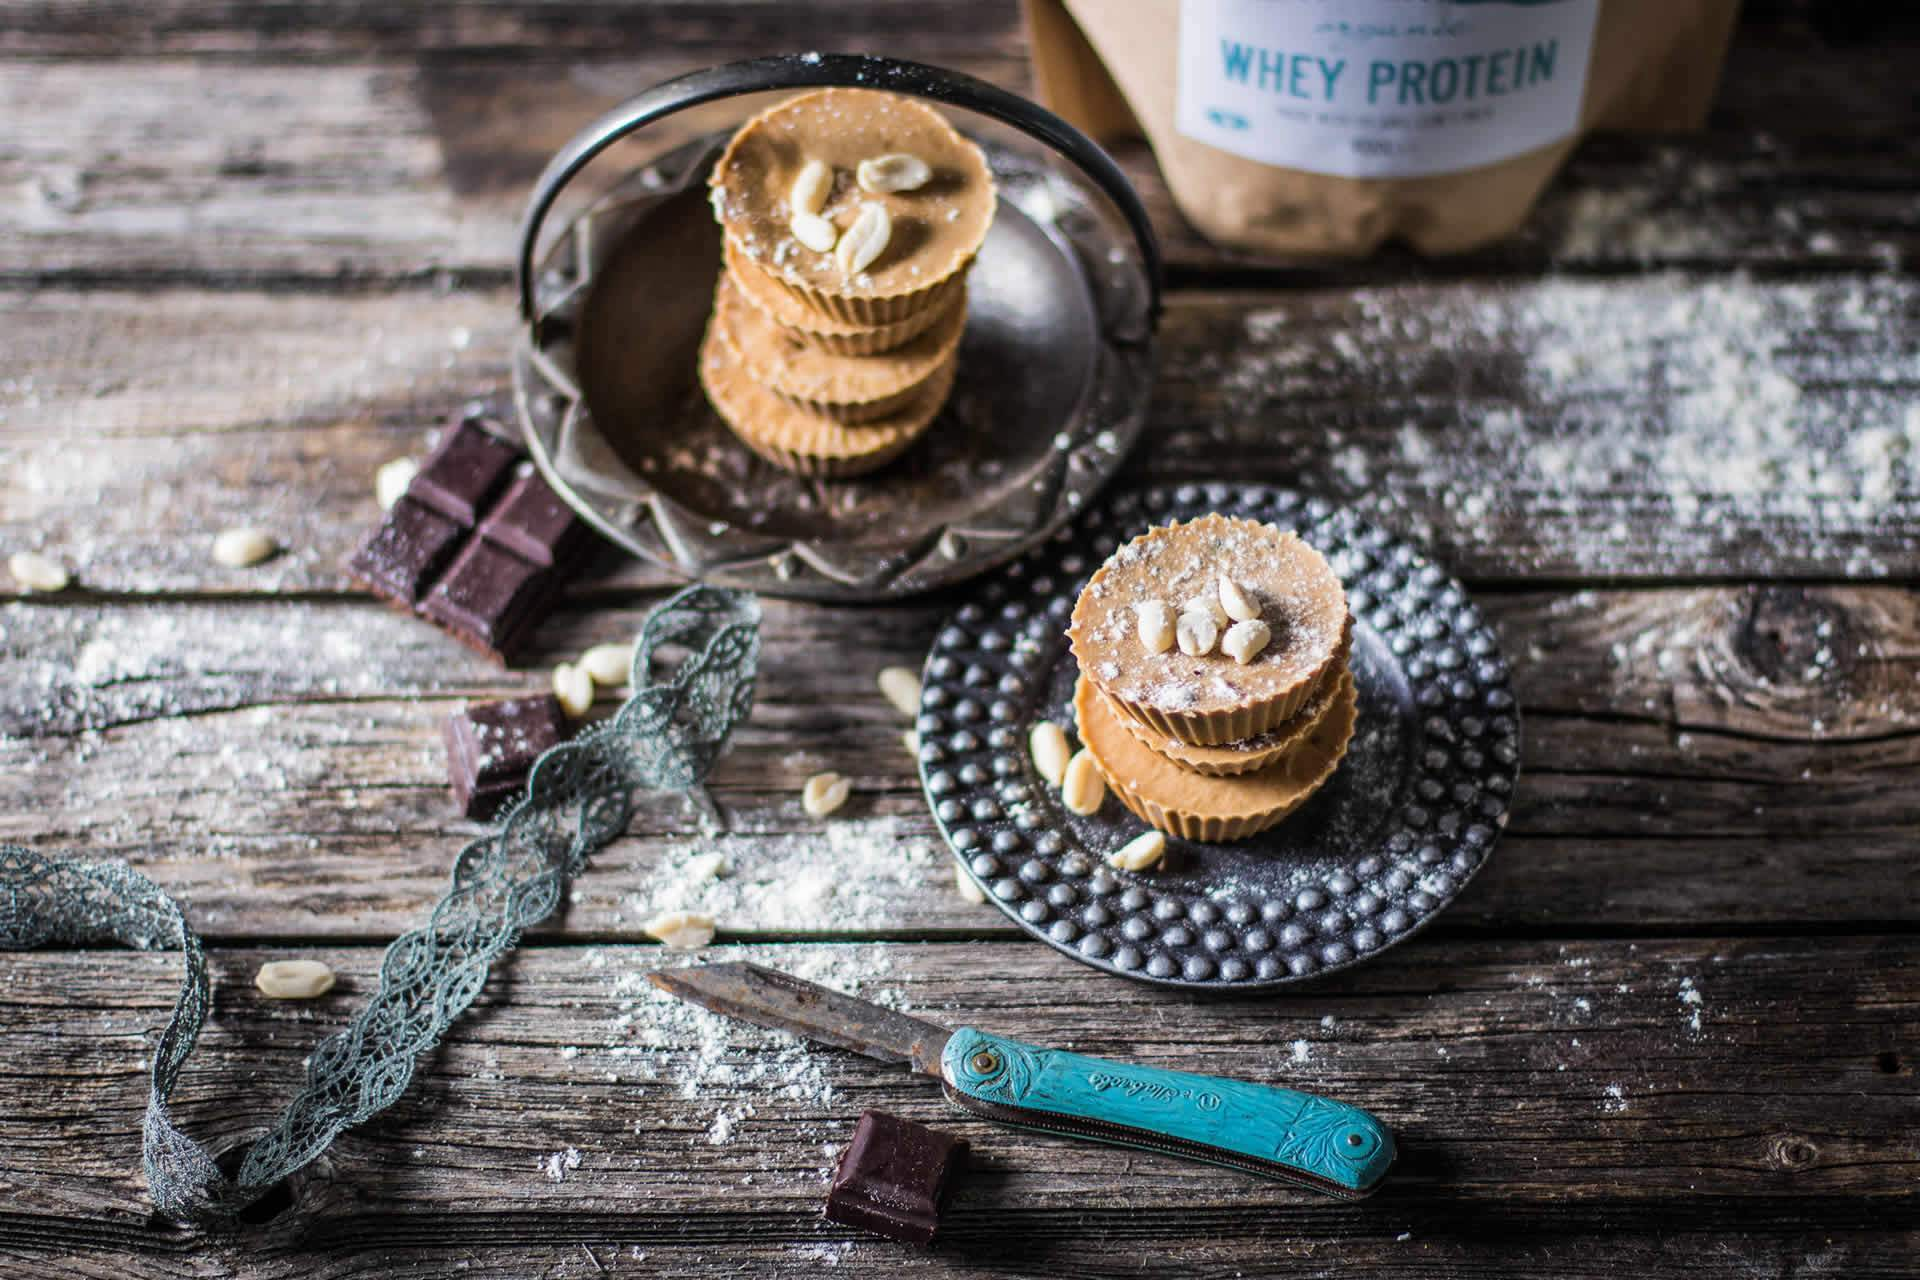 Peanut Butter & Whey Protein Cups